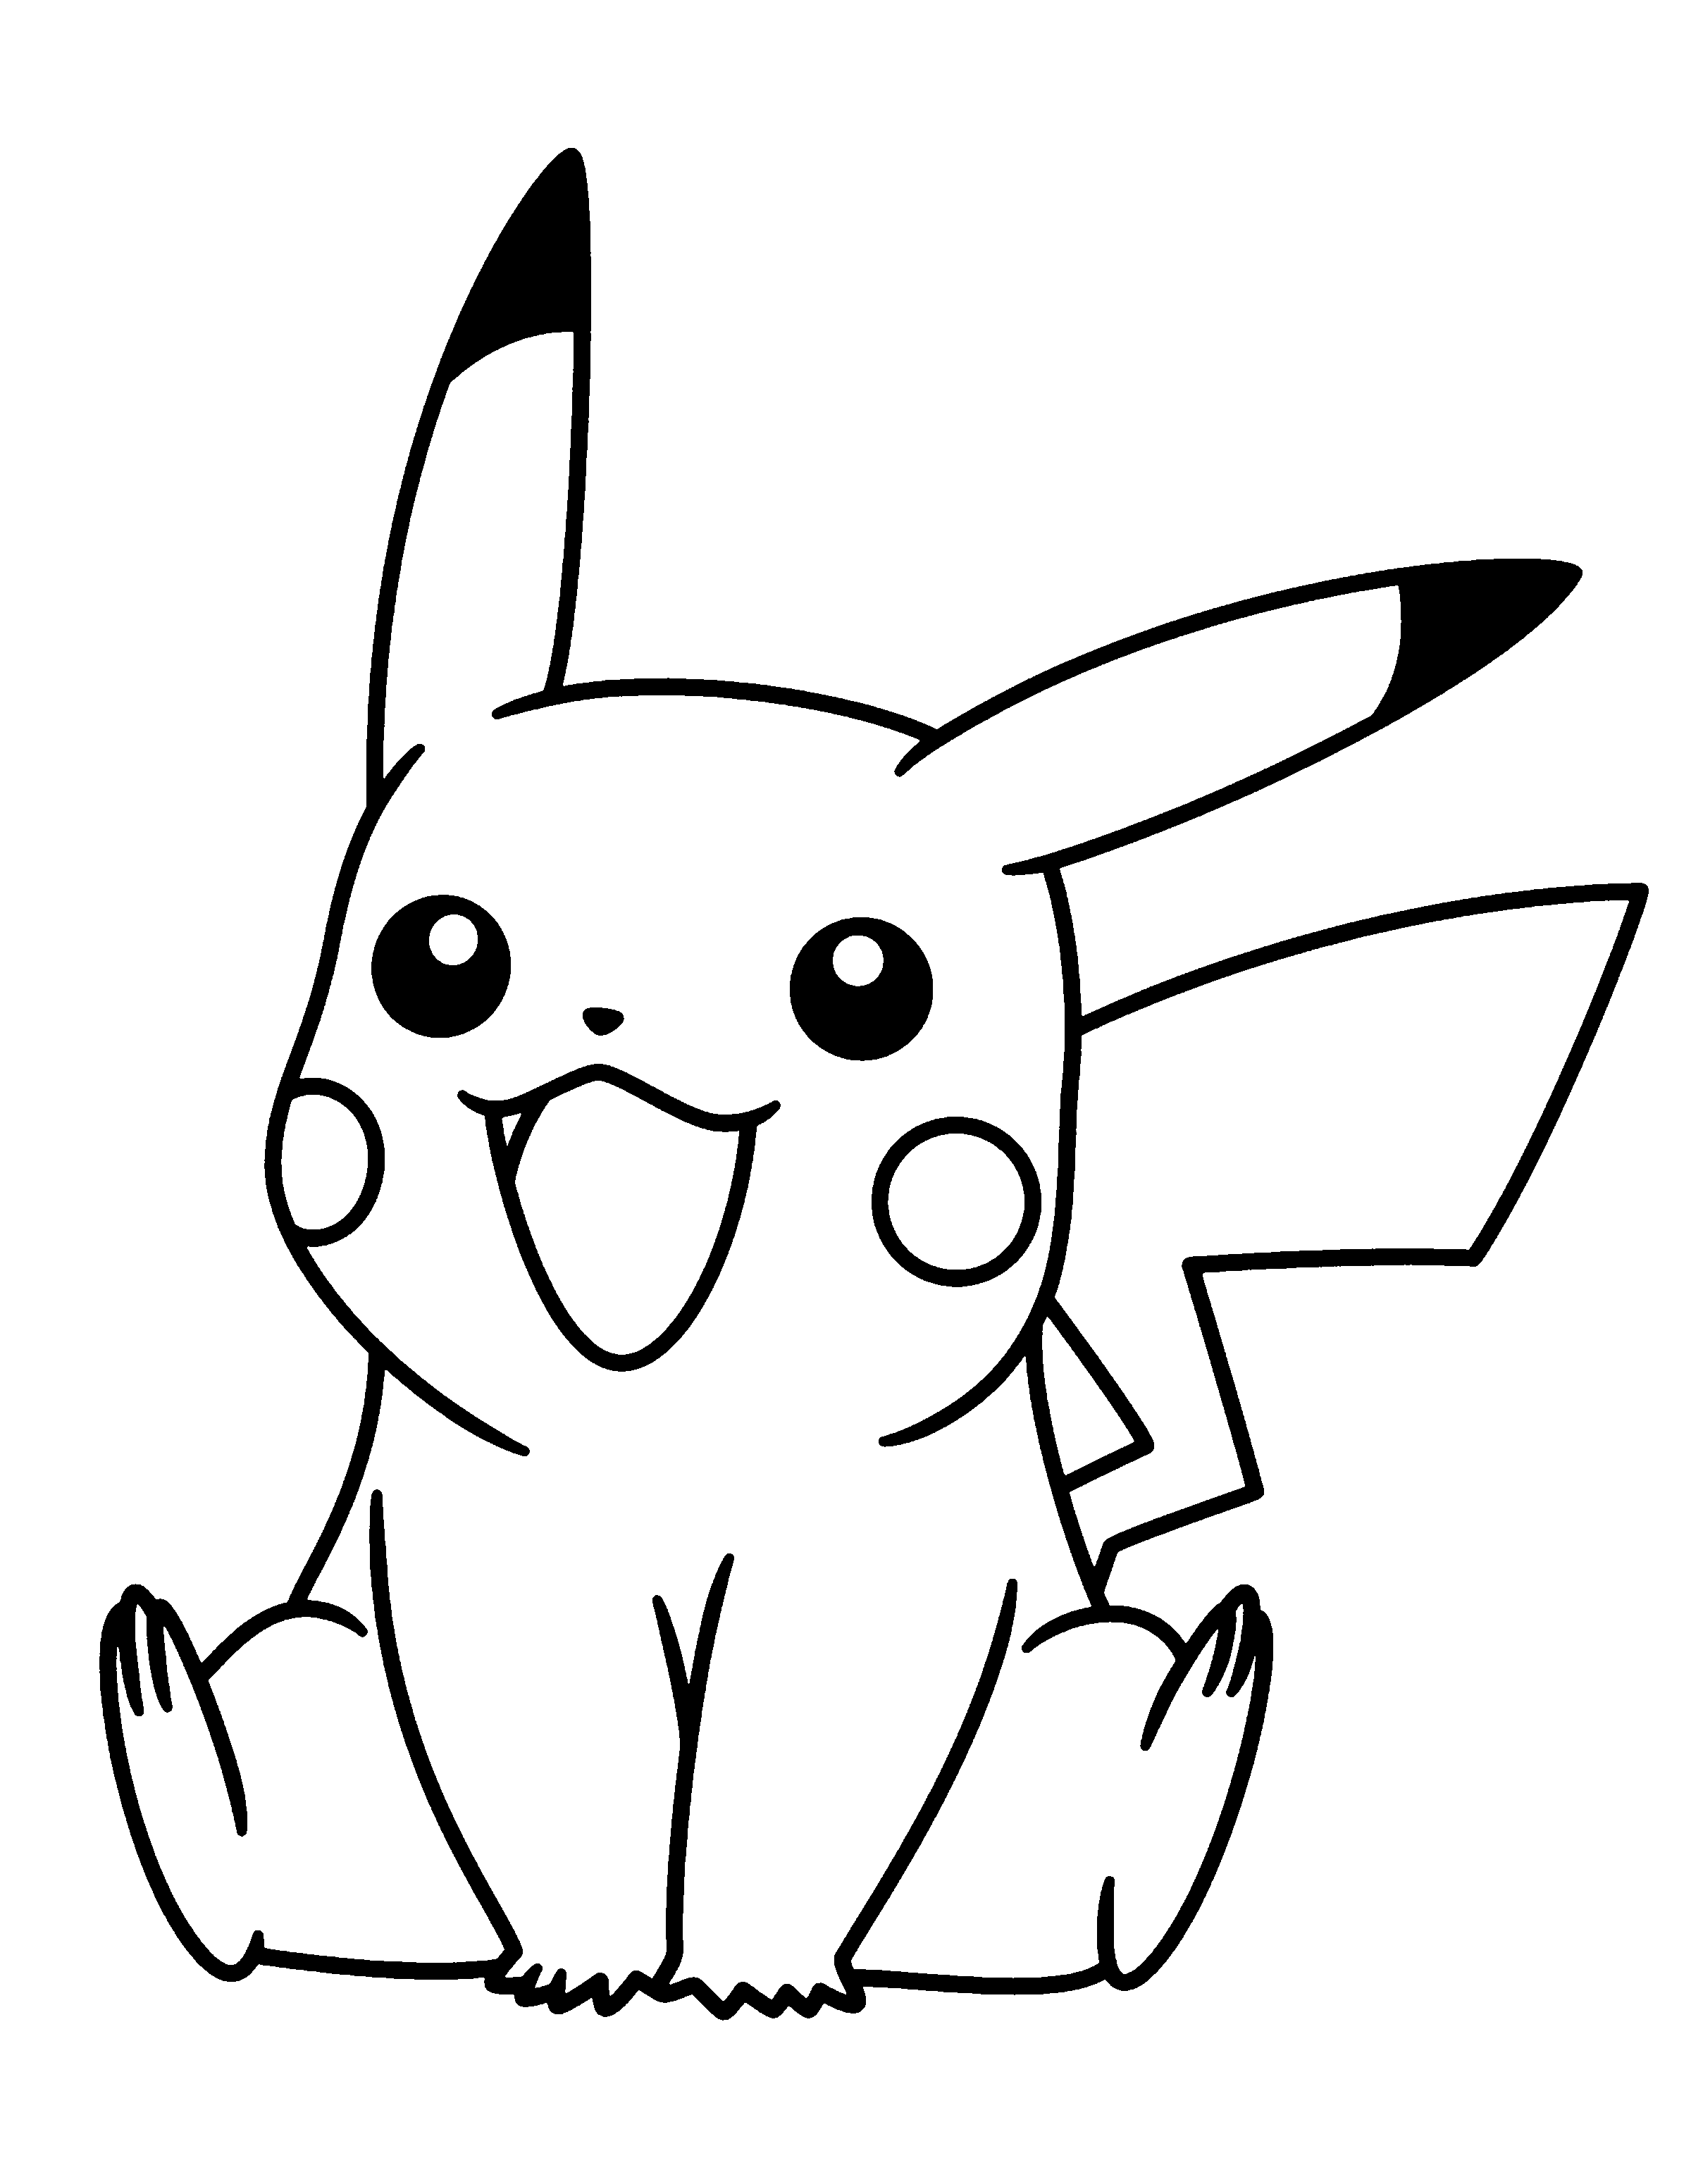 Pikachu Pokemon coloring pages🌸🦋ADULT COLORING BOOK PAGES